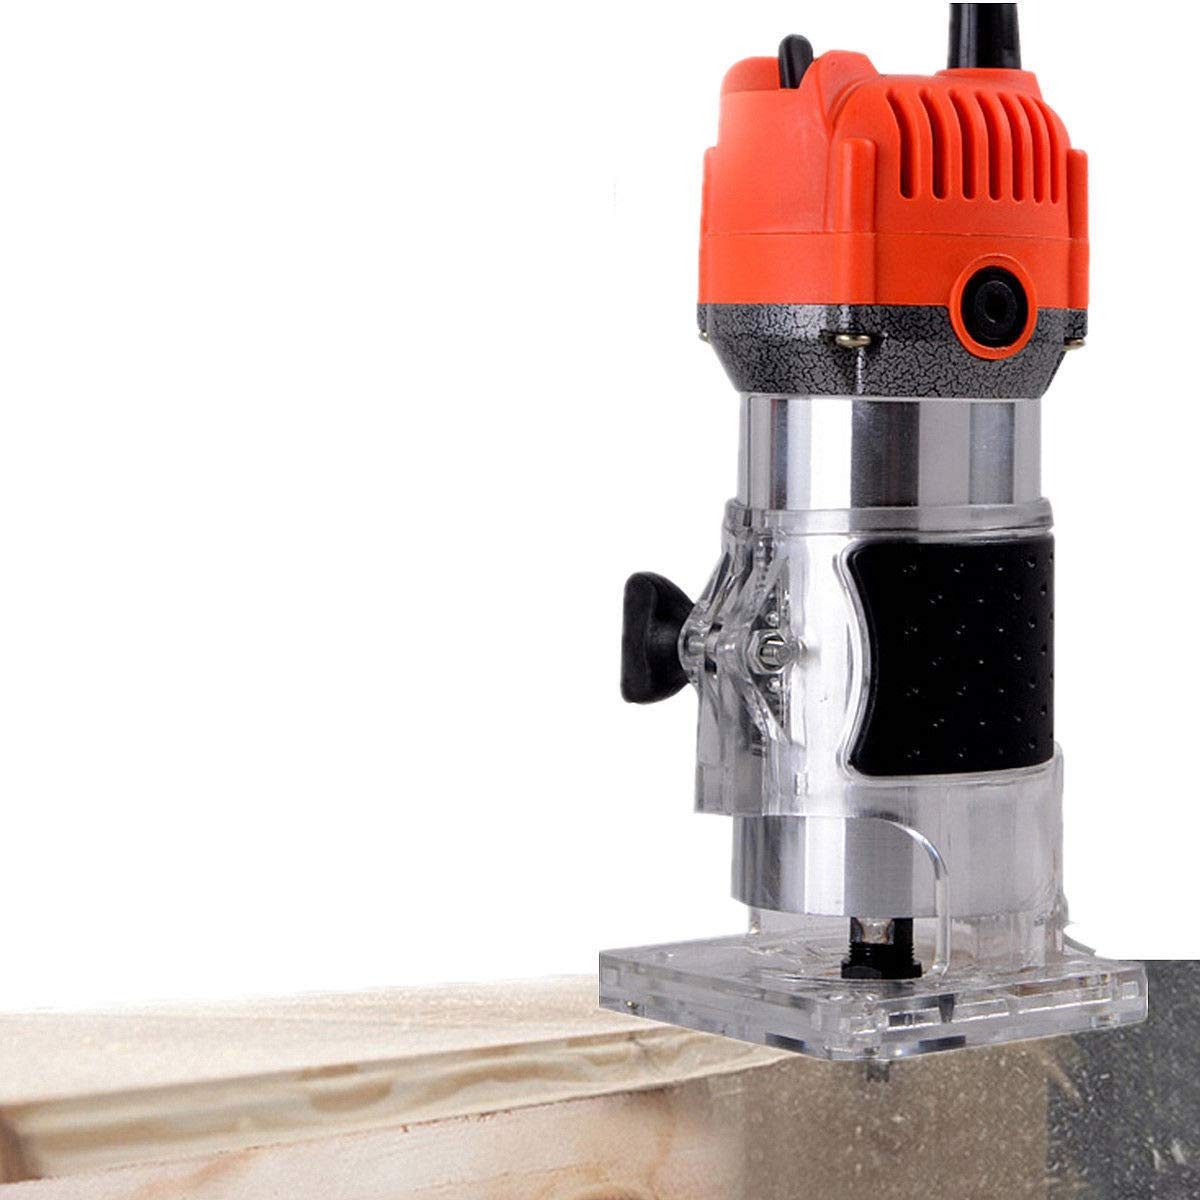 Cypress Shop Electric Wood Trimmer Router Joiner Hand Woodworking Carpenter Laminator Palm Cutting Machine 580 Watt Wood Lathes Hand Power Tools Equipments